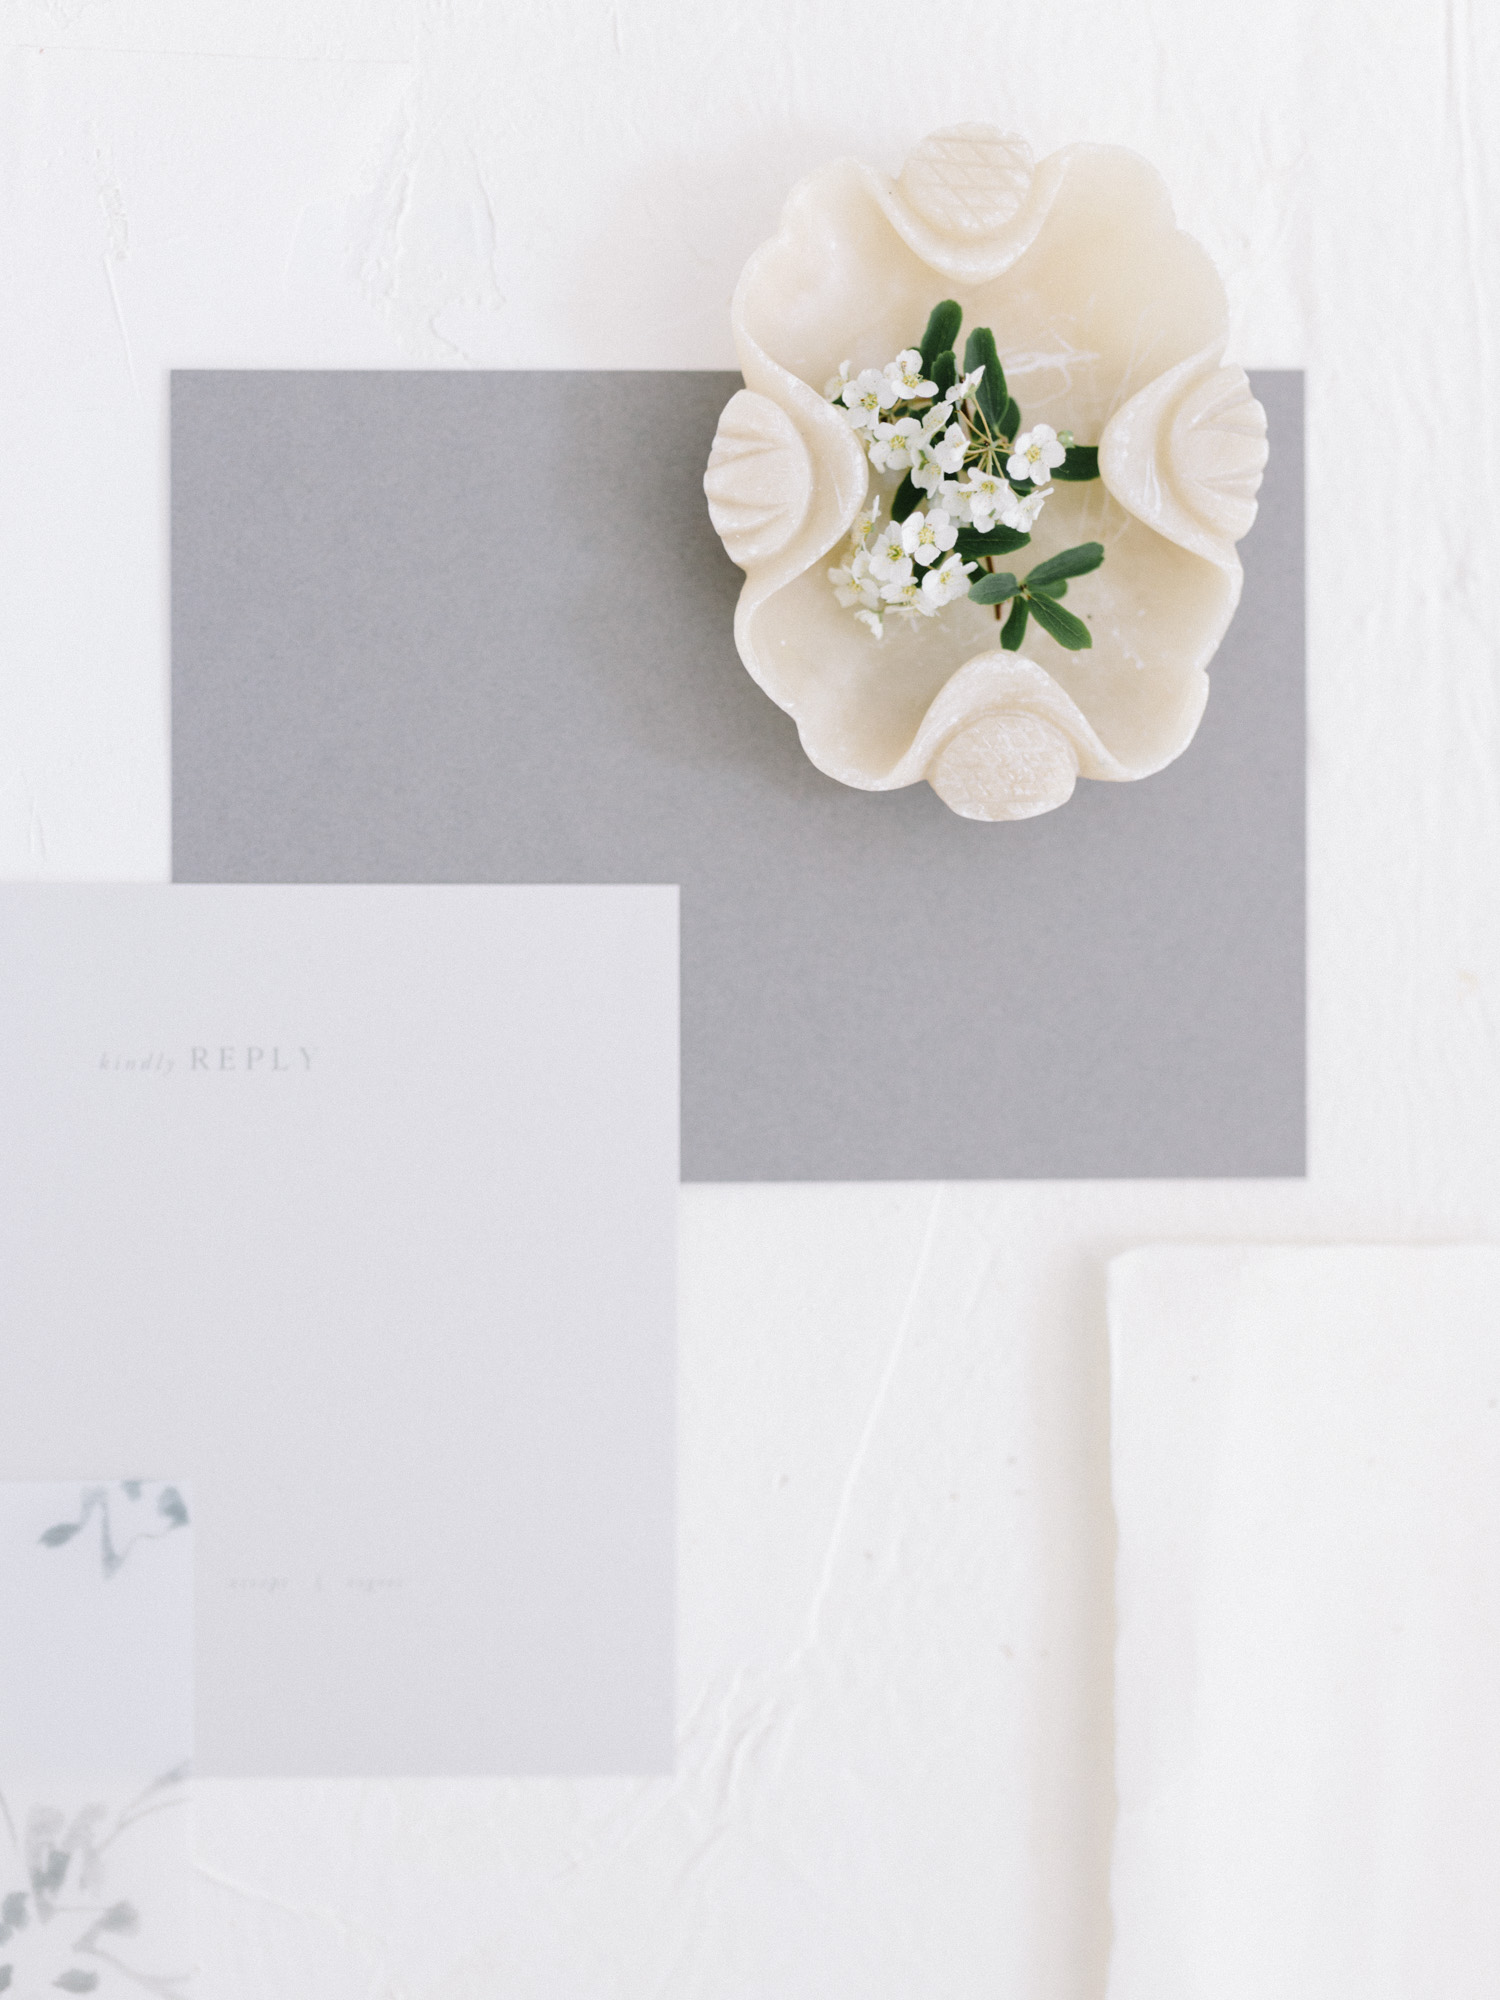 Minimal wedding invitations in shades of grey rest against a white background, along with a dish of tiny flowers